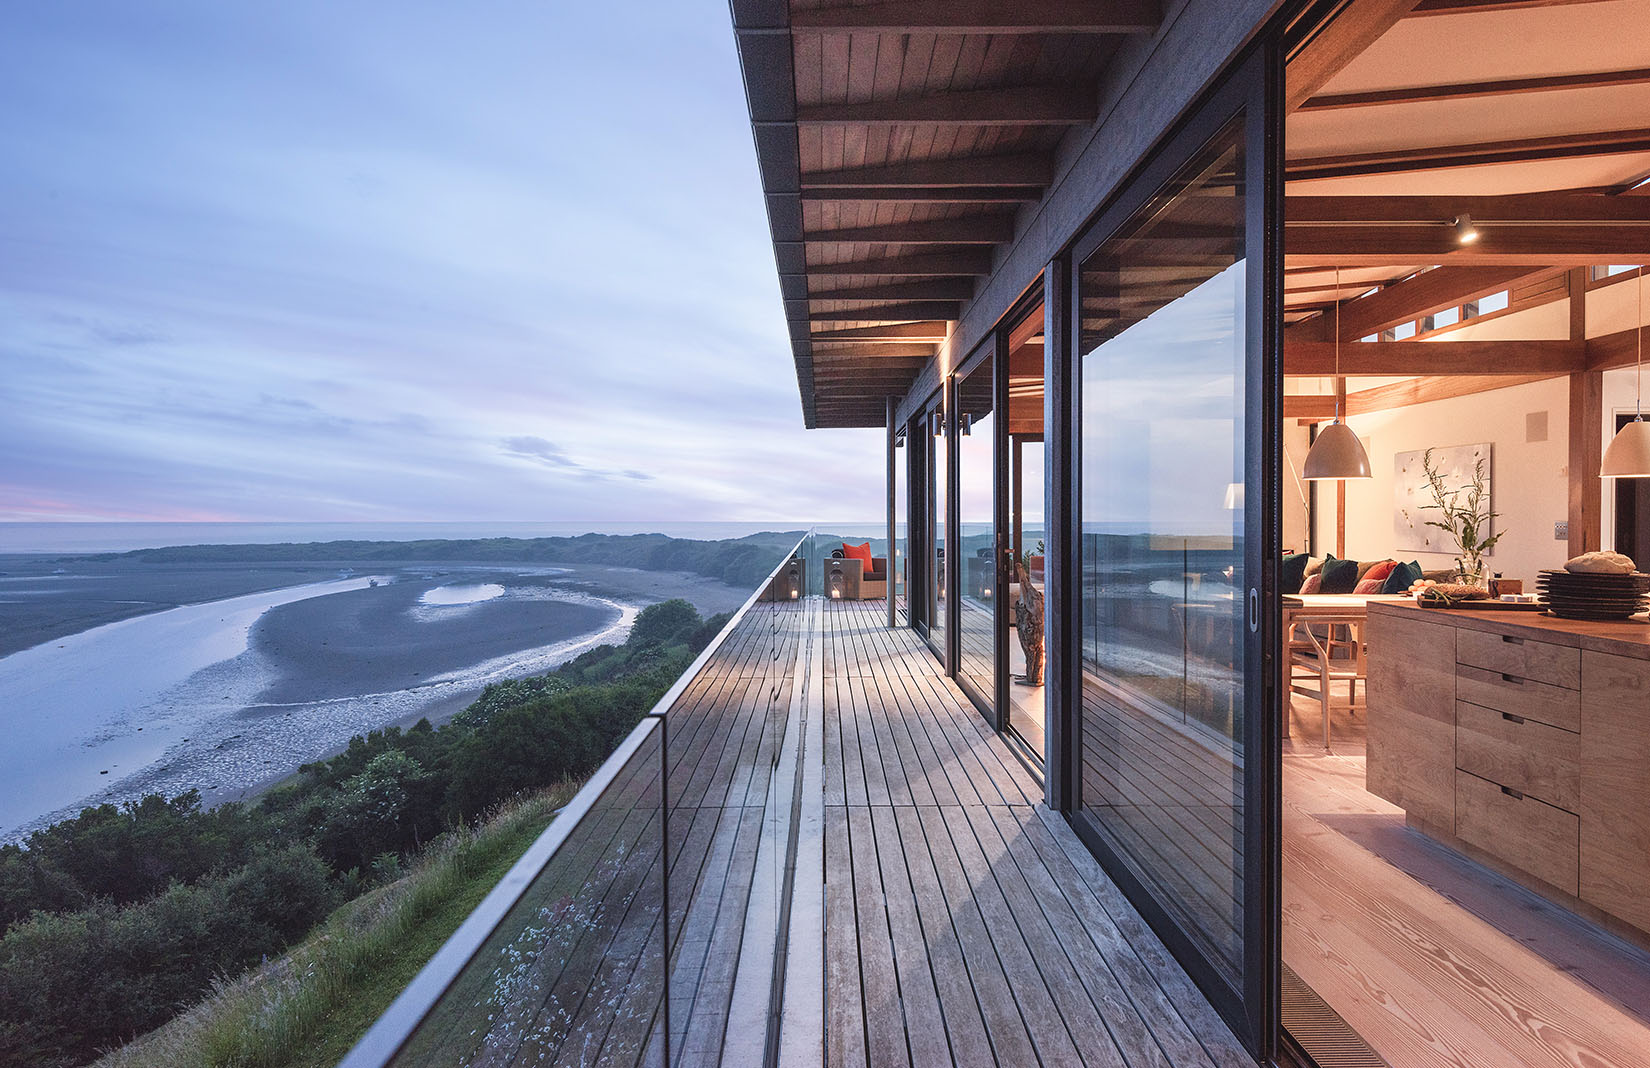 Welsh holiday home designed by John Pardey Architects